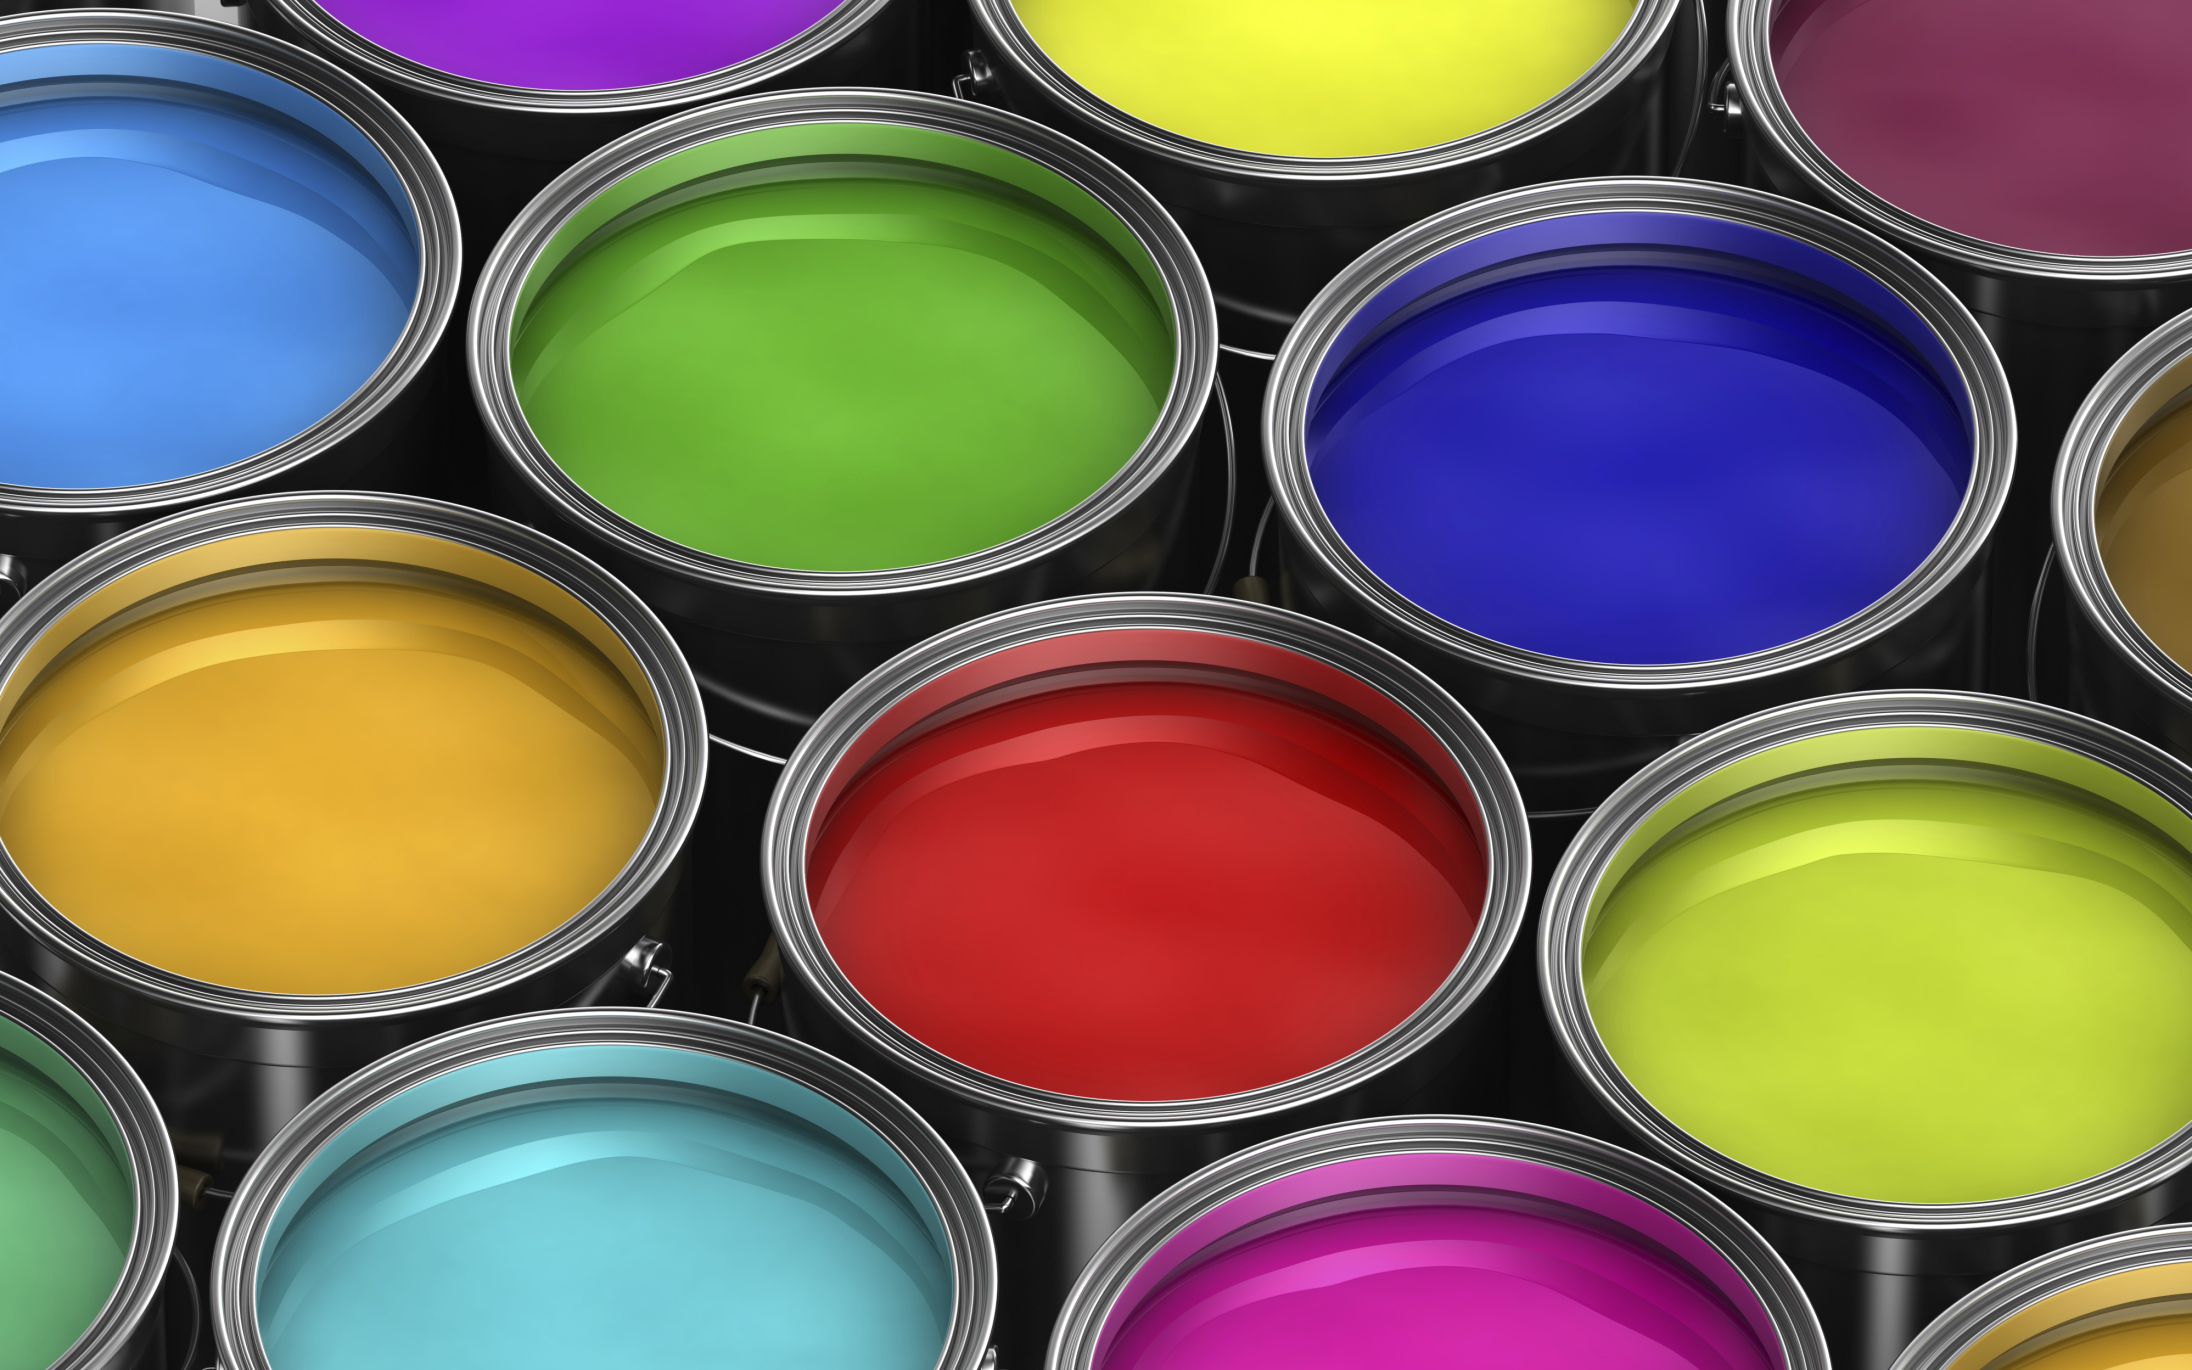 Indian Paint Industry to cross INR 62K crore by 2017: ASSOCHAM